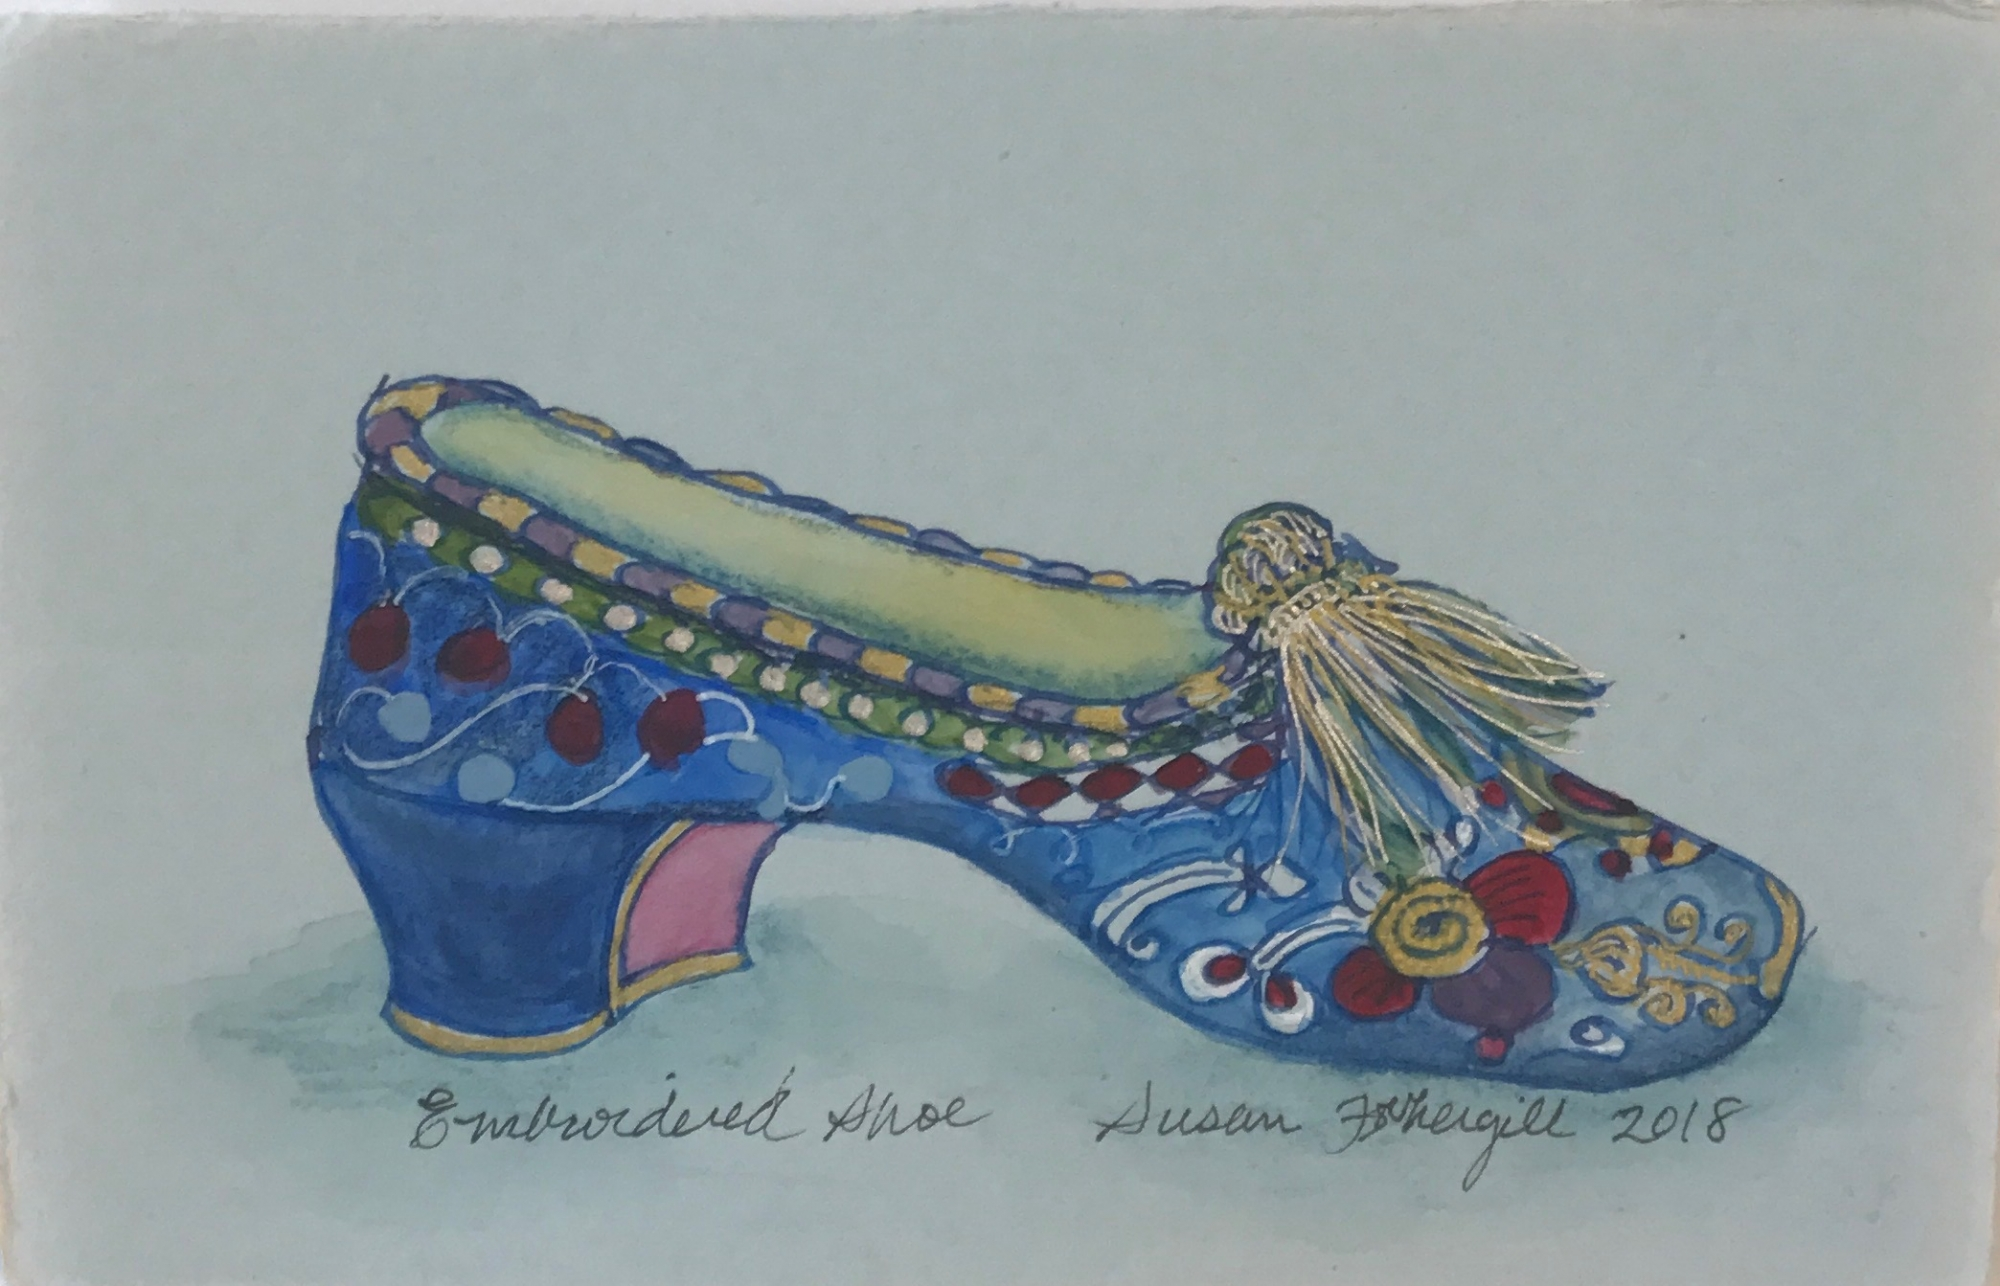 Embroidered Shoe by Susan Fothergill